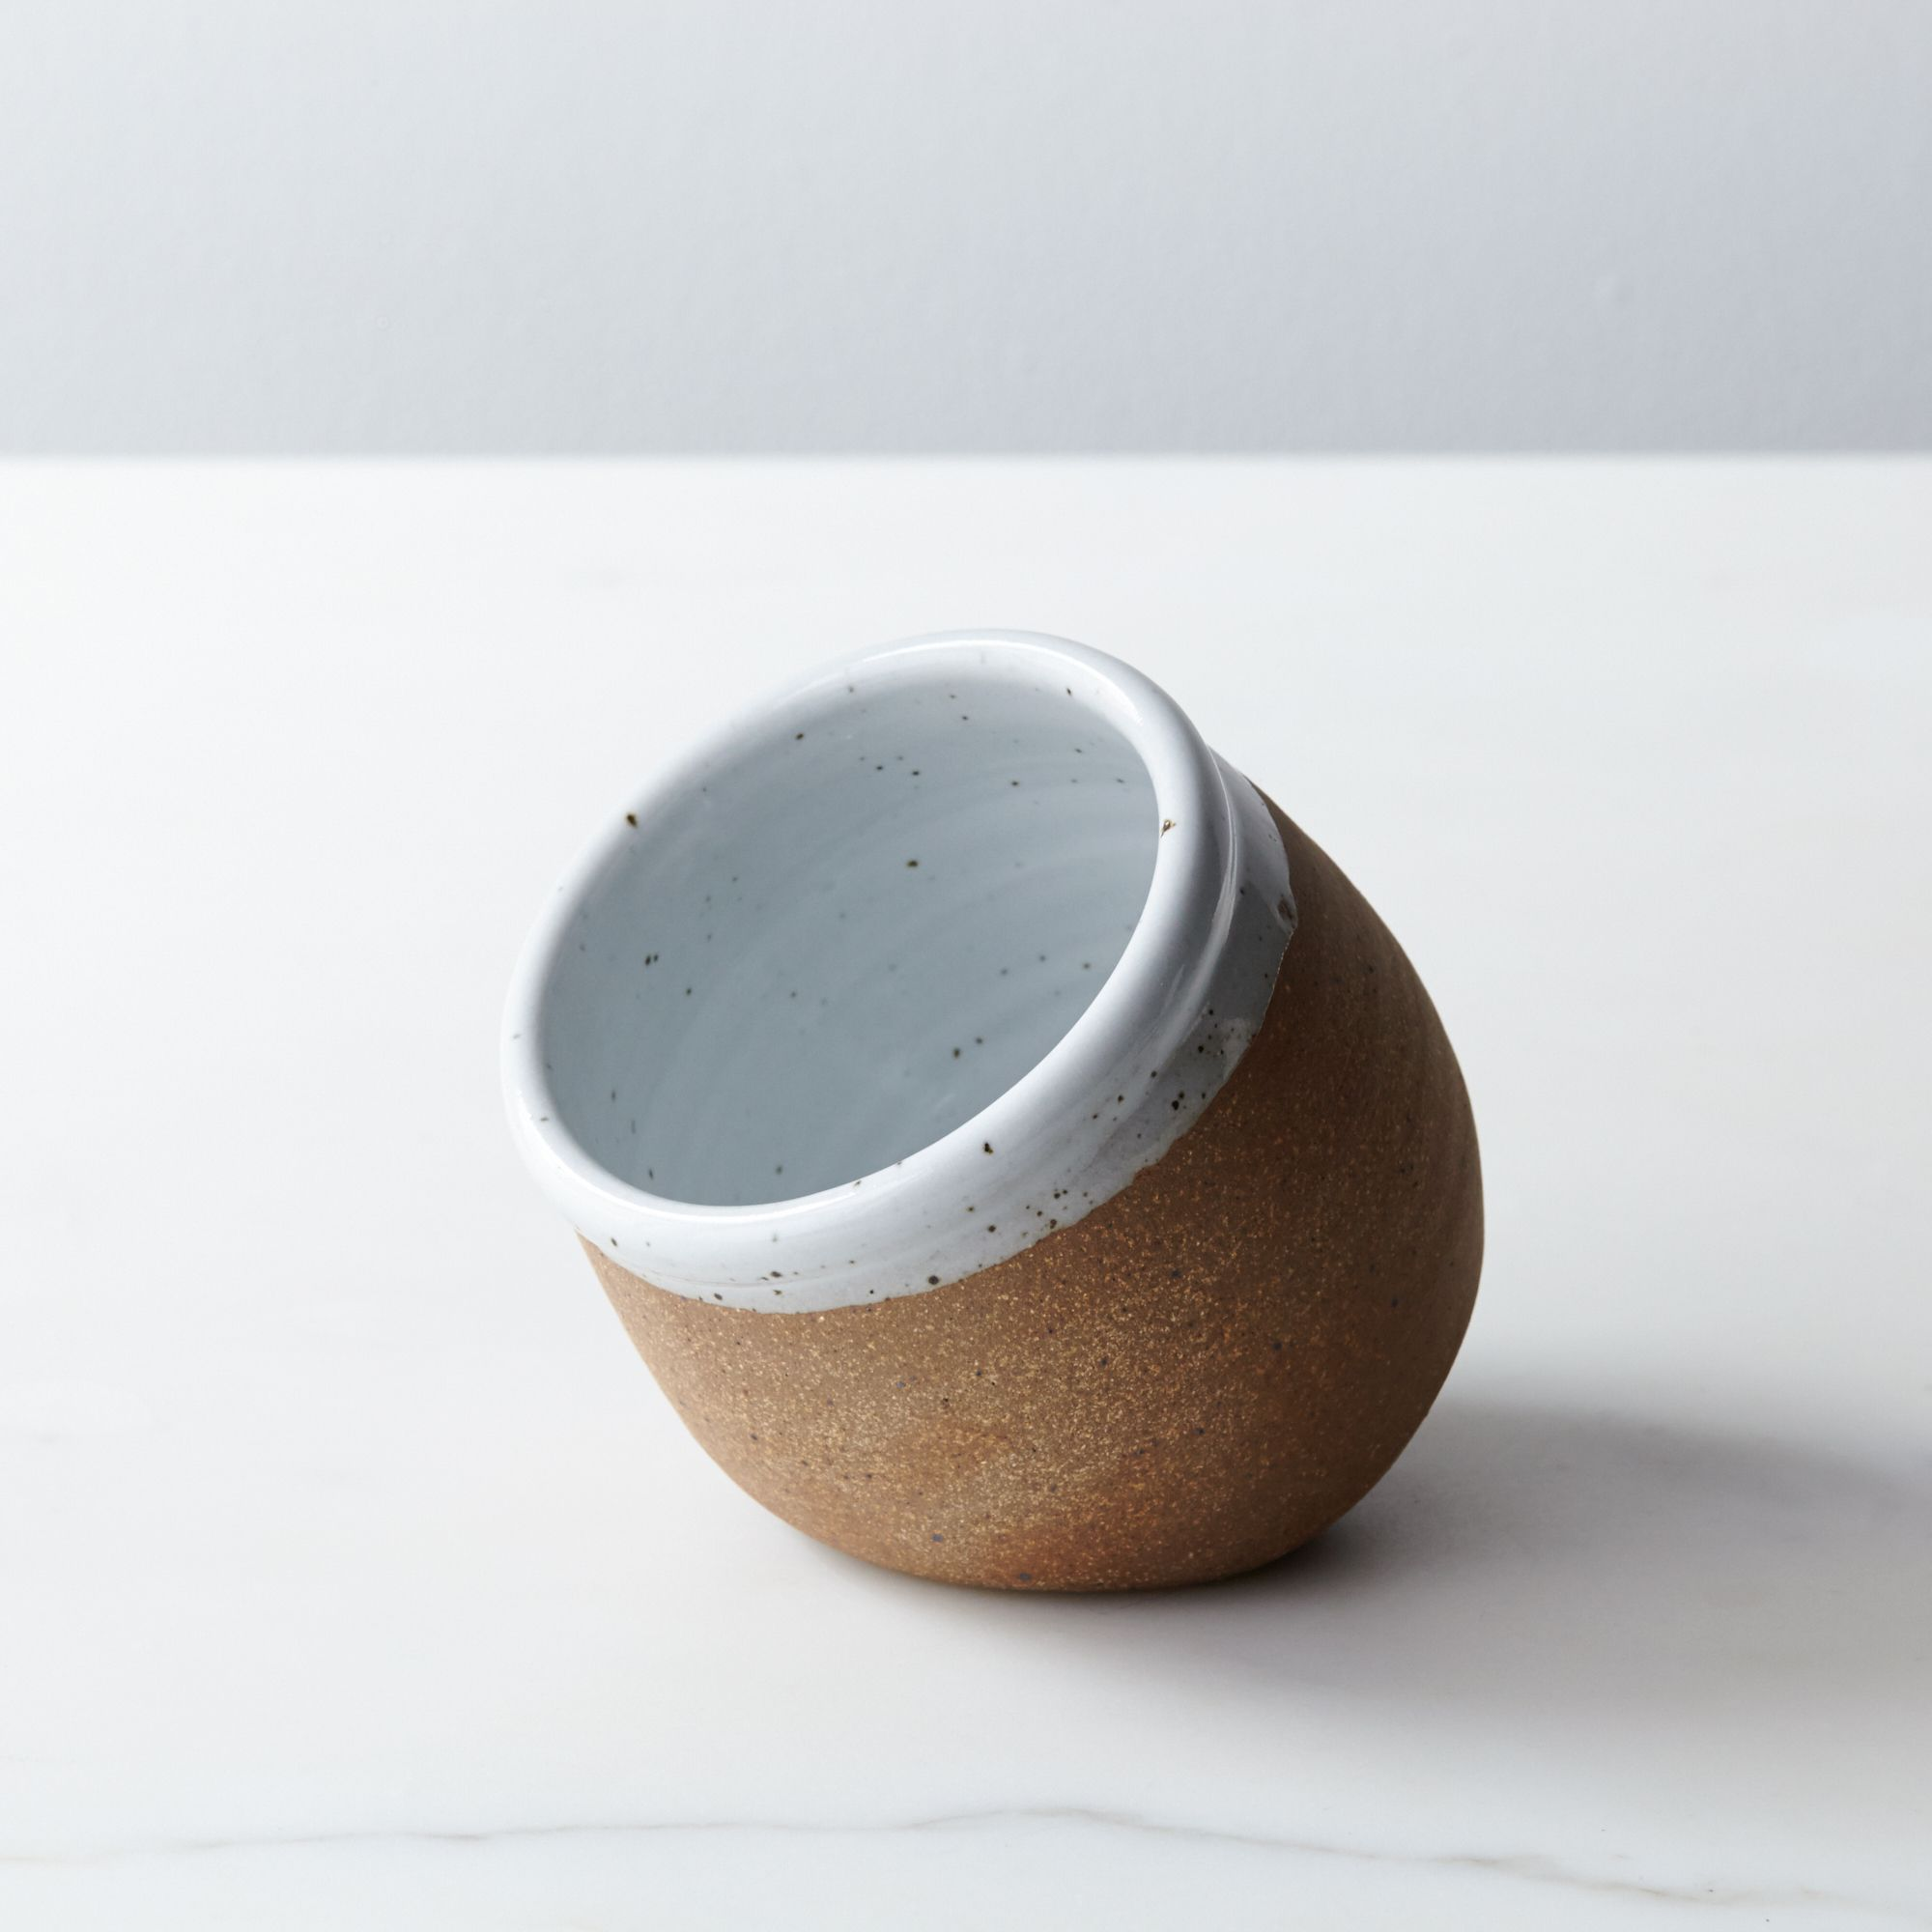 8a0097cd-4a85-40a6-91c0-c2e3e8c0c955--2014-0522_sawyer-ceramics_salt-cellar_silo-330